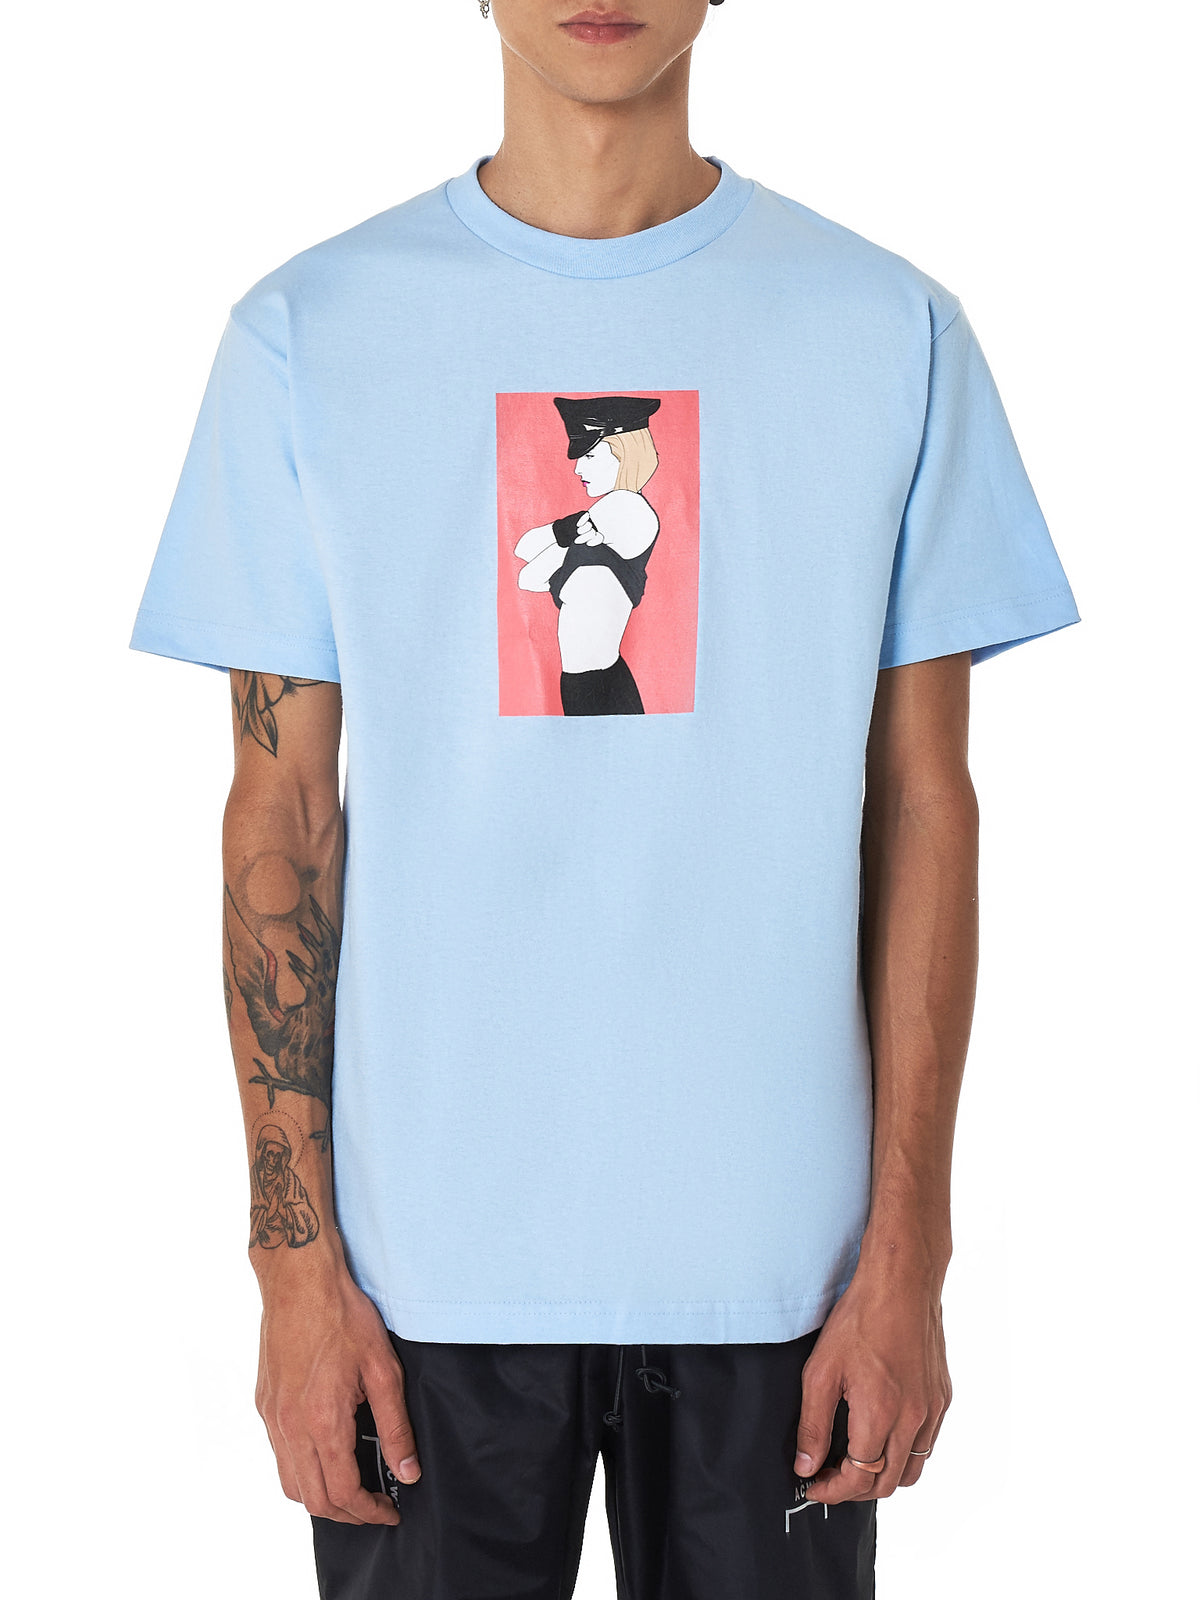 Pleasures 'Arrested' Tee Shirt - Hlorenzo Front